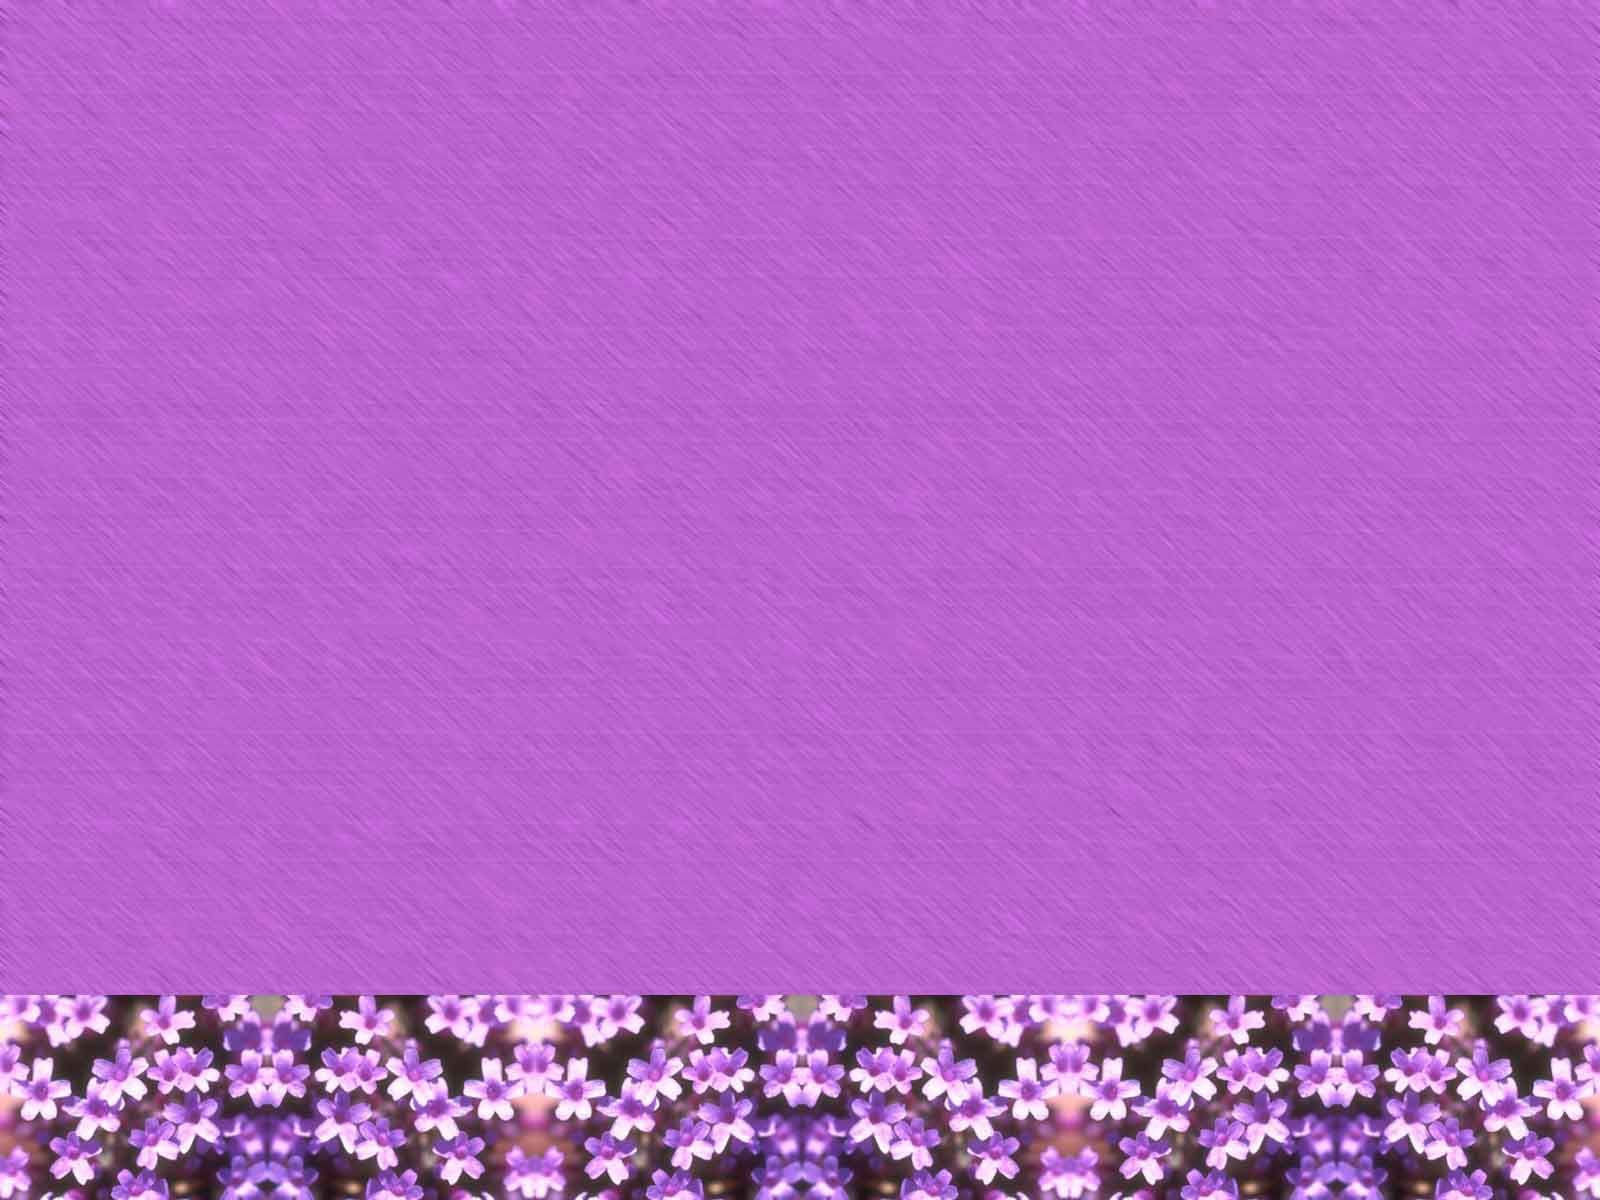 Purple Flower Backgrounds Purple Backgrounds Twinkle Stars Purple